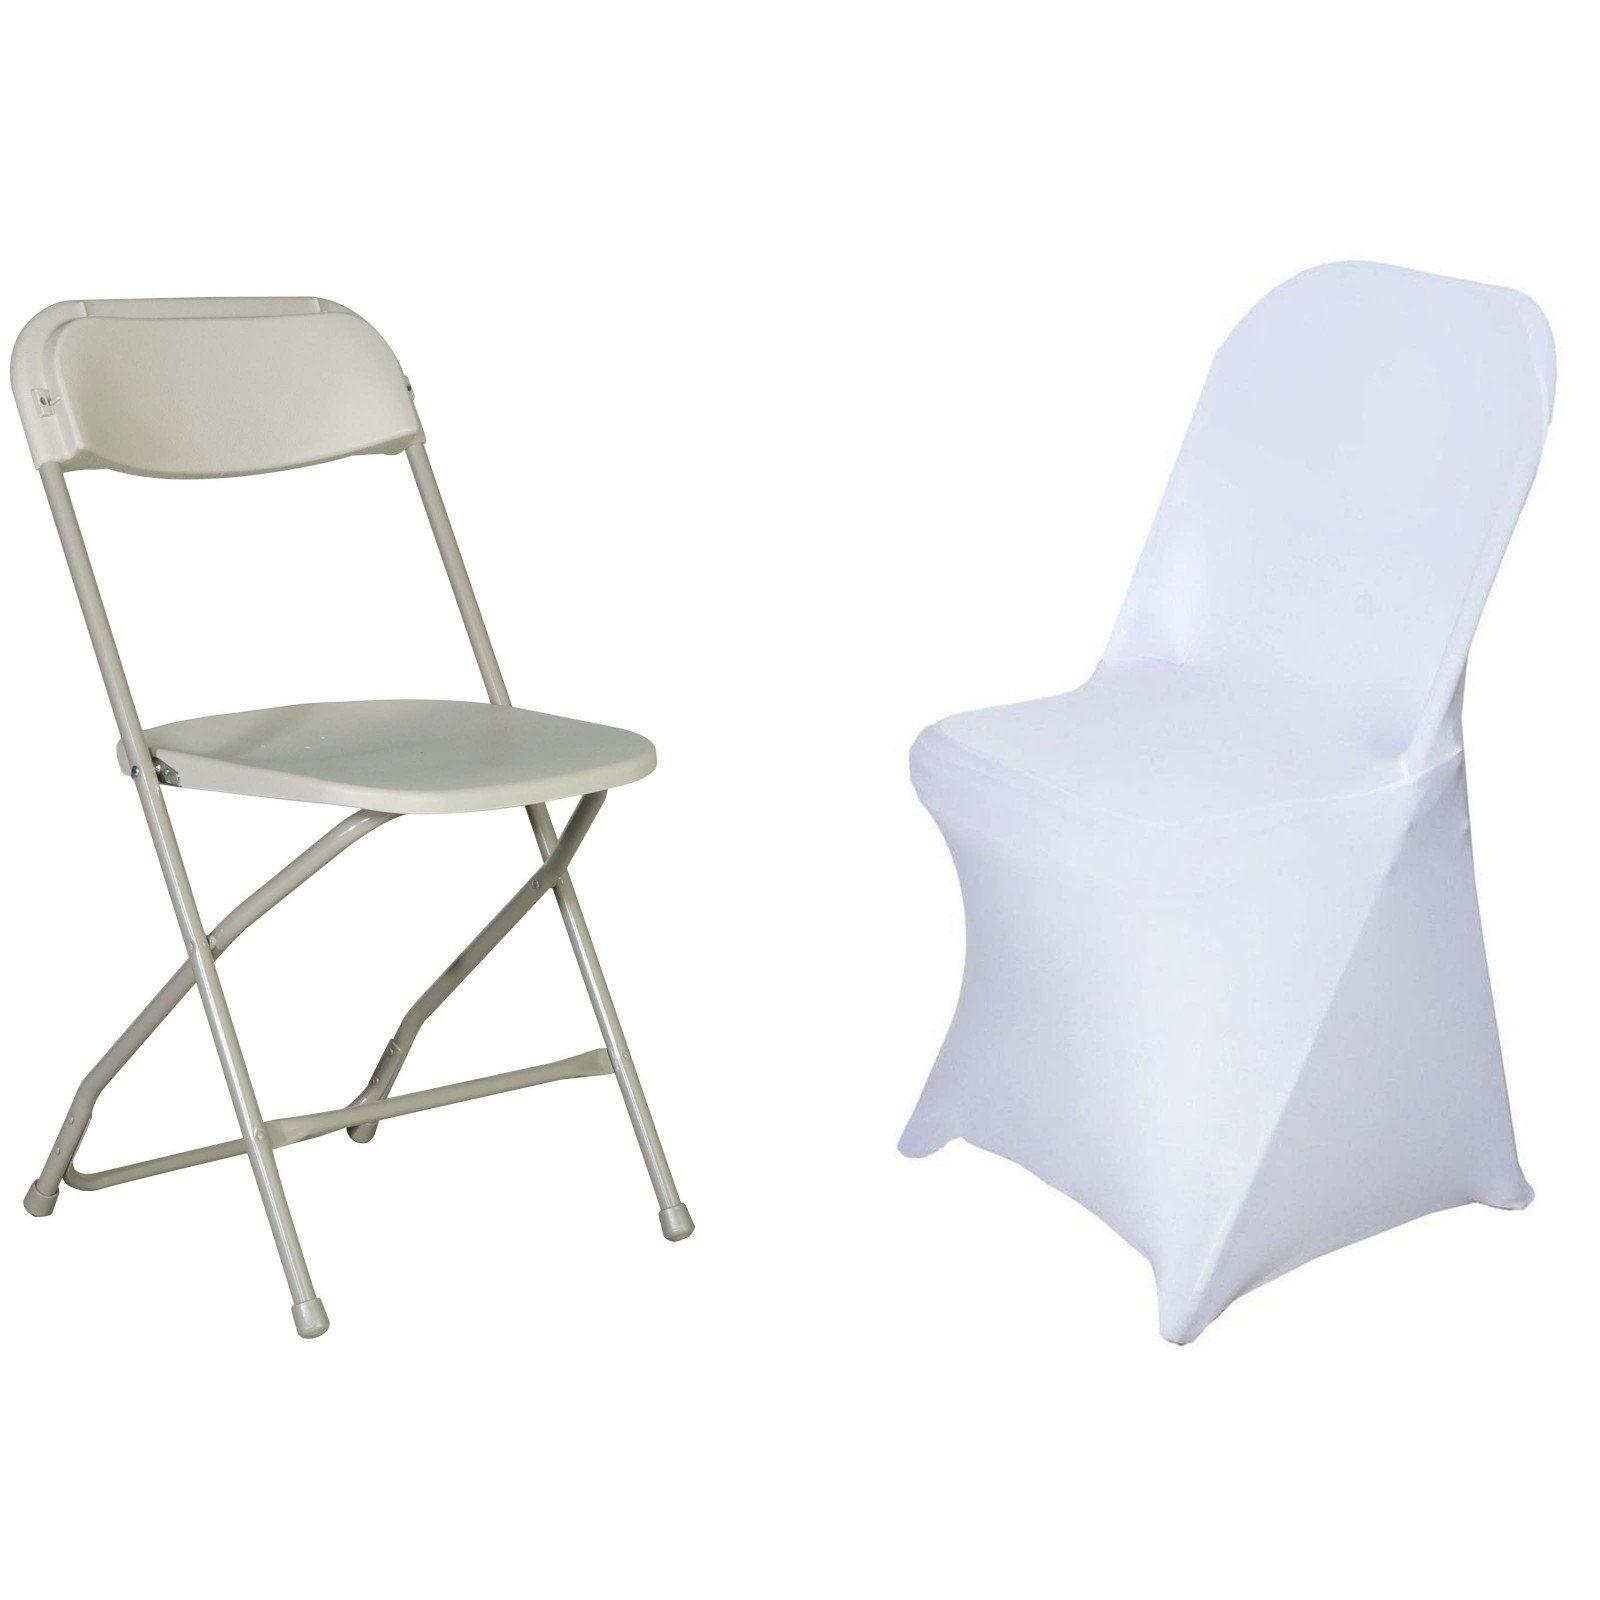 Peachy 2 Pcs Lifetime Spandex Stretch Fitted Folding Chair Covers Bralicious Painted Fabric Chair Ideas Braliciousco